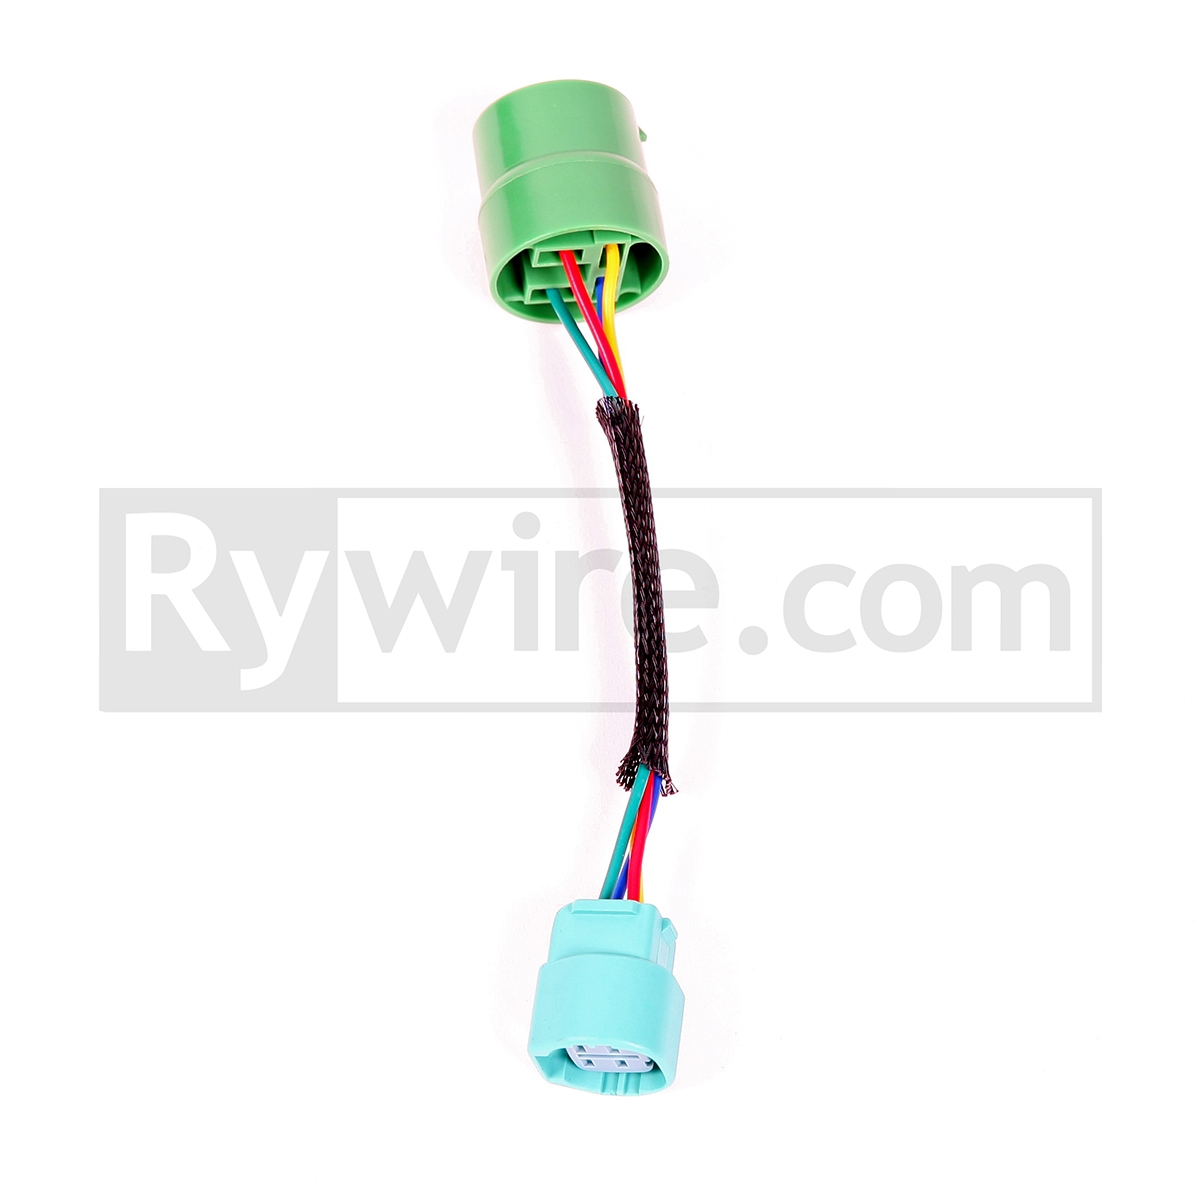 OBD0 & OBD1 chis to OBD2 Alternator Adapter Obd Wire Harness on wire nut, wire cap, wire antenna, wire leads, wire sleeve, wire lamp, wire clothing, wire connector, wire holder, wire ball,